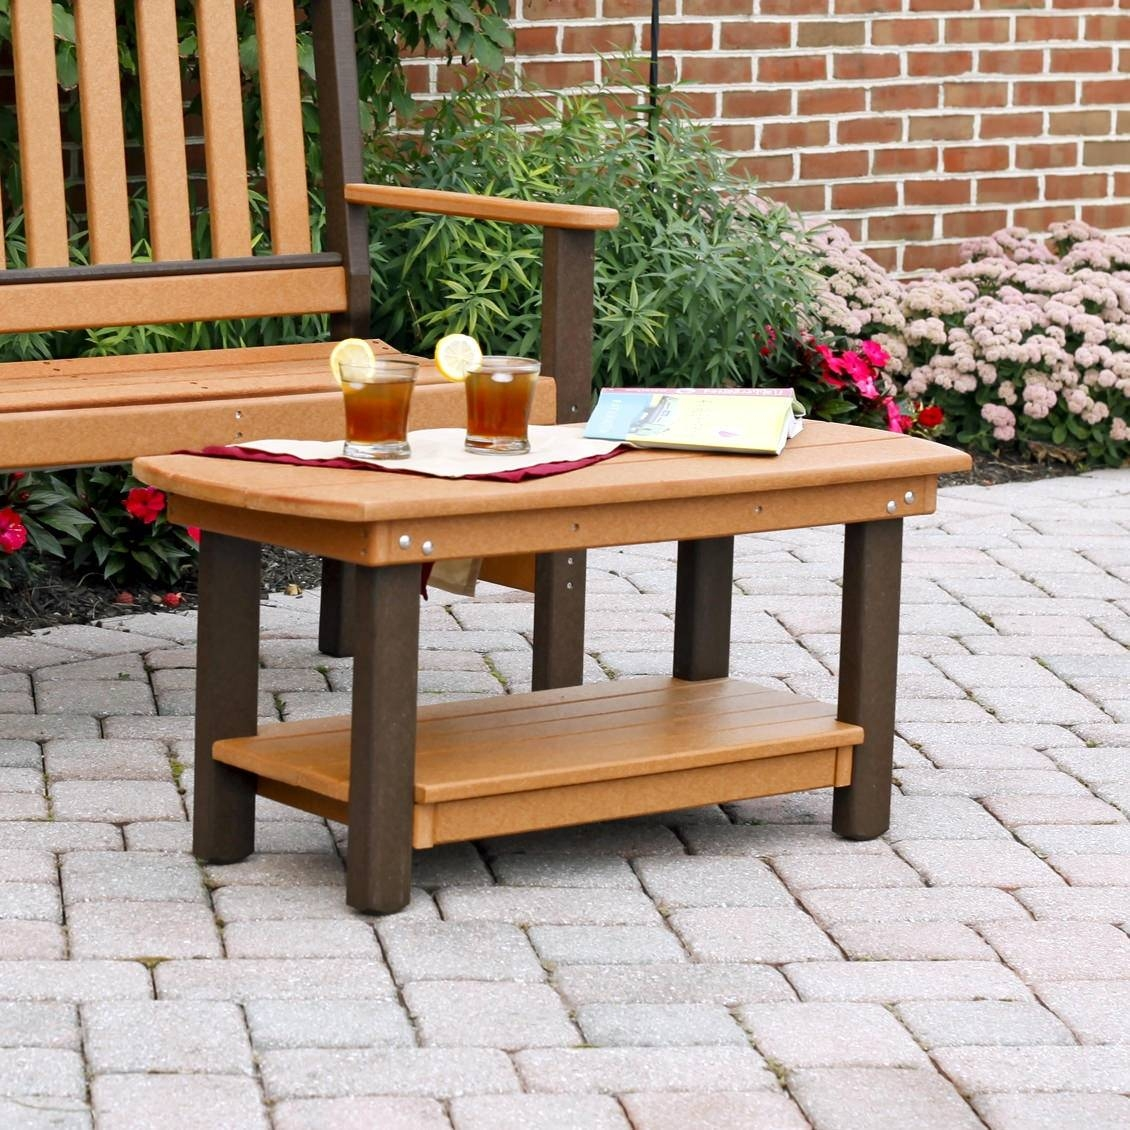 Amish Poly Wood Garden Coffee Table – Leisure Lawns Collection For Wooden Garden Coffee Tables (Image 3 of 30)